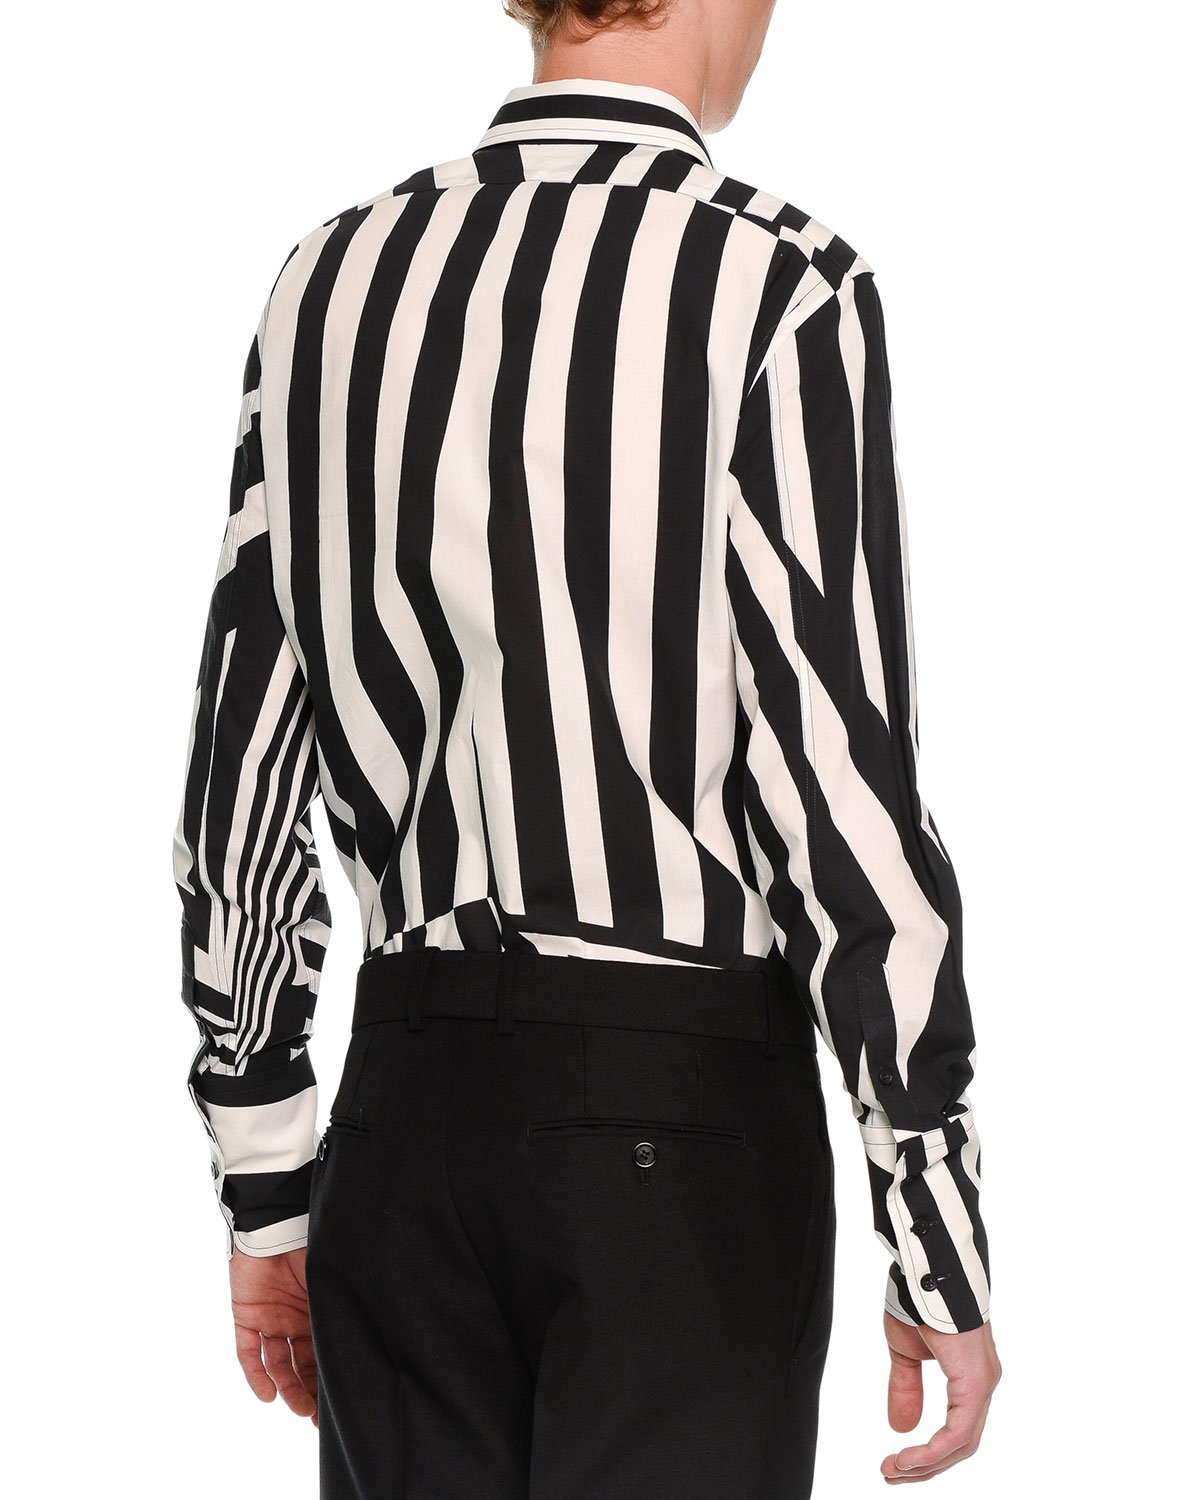 Alexander mcqueen Stripe-patched Button-down Shirt in Black for ...